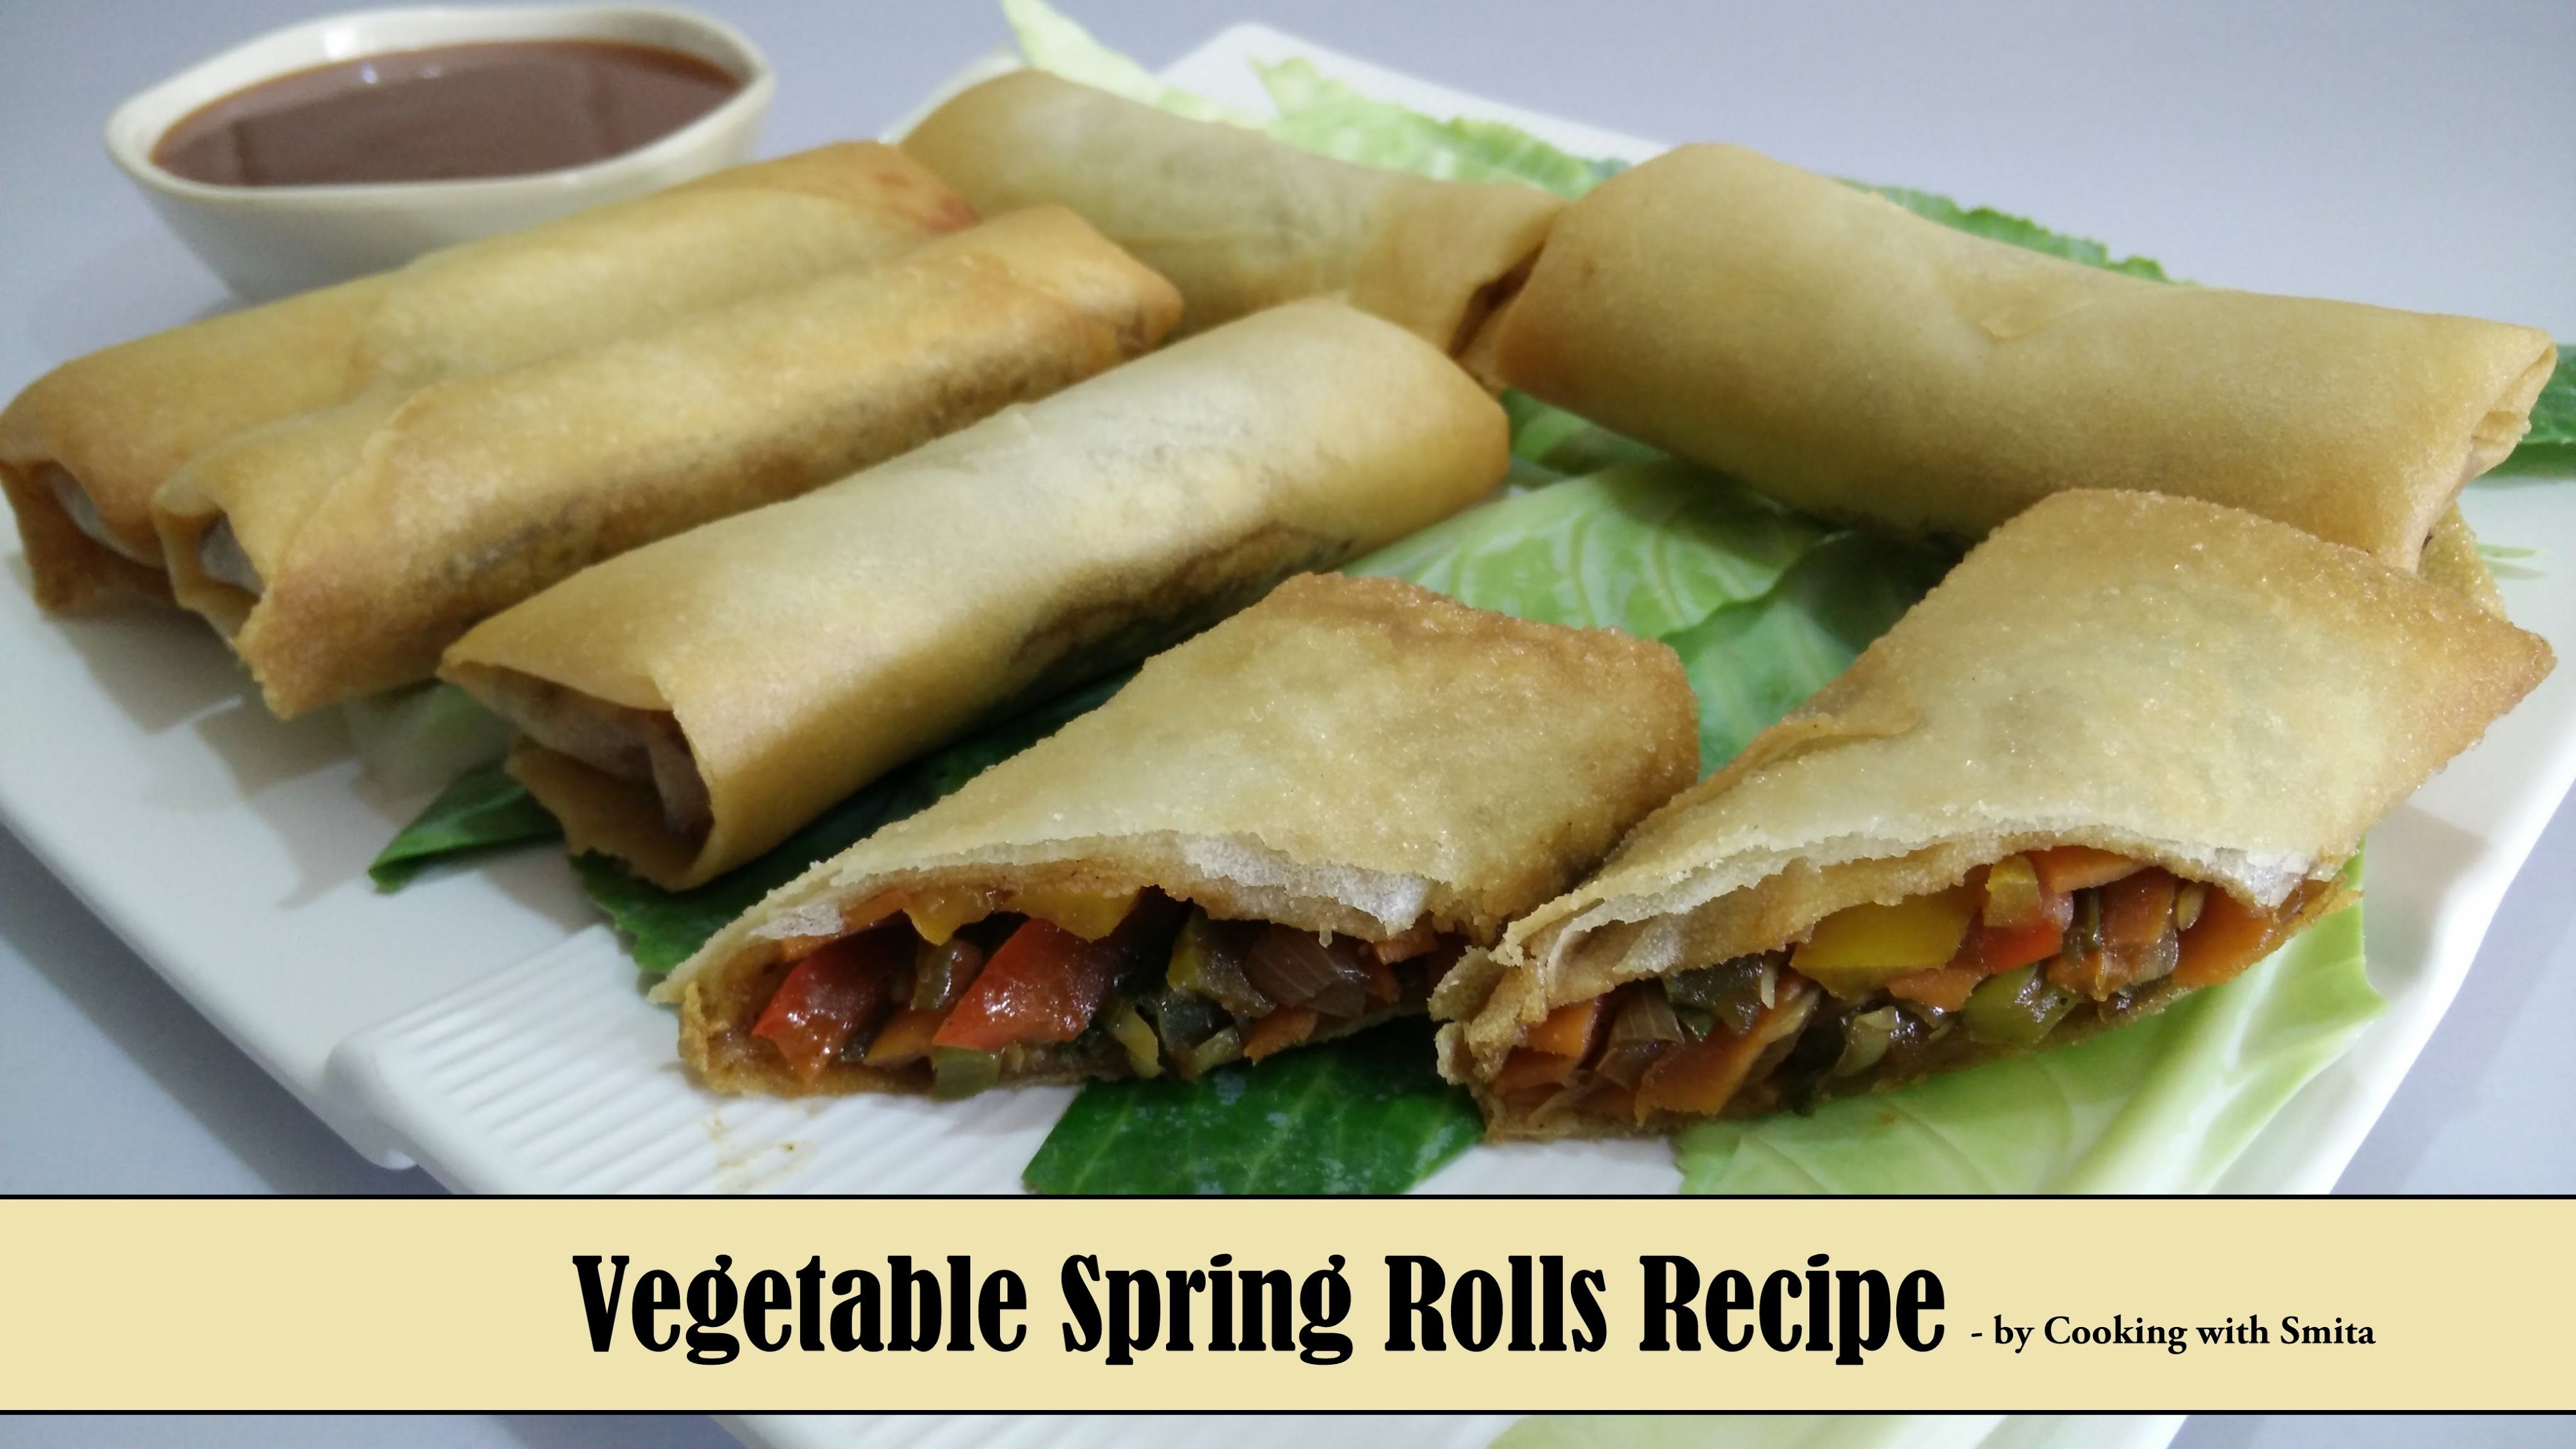 Vegetable spring rolls recipe in hindi by cooking with smita vegetable spring rolls recipe in hindi by cooking with smita forumfinder Choice Image